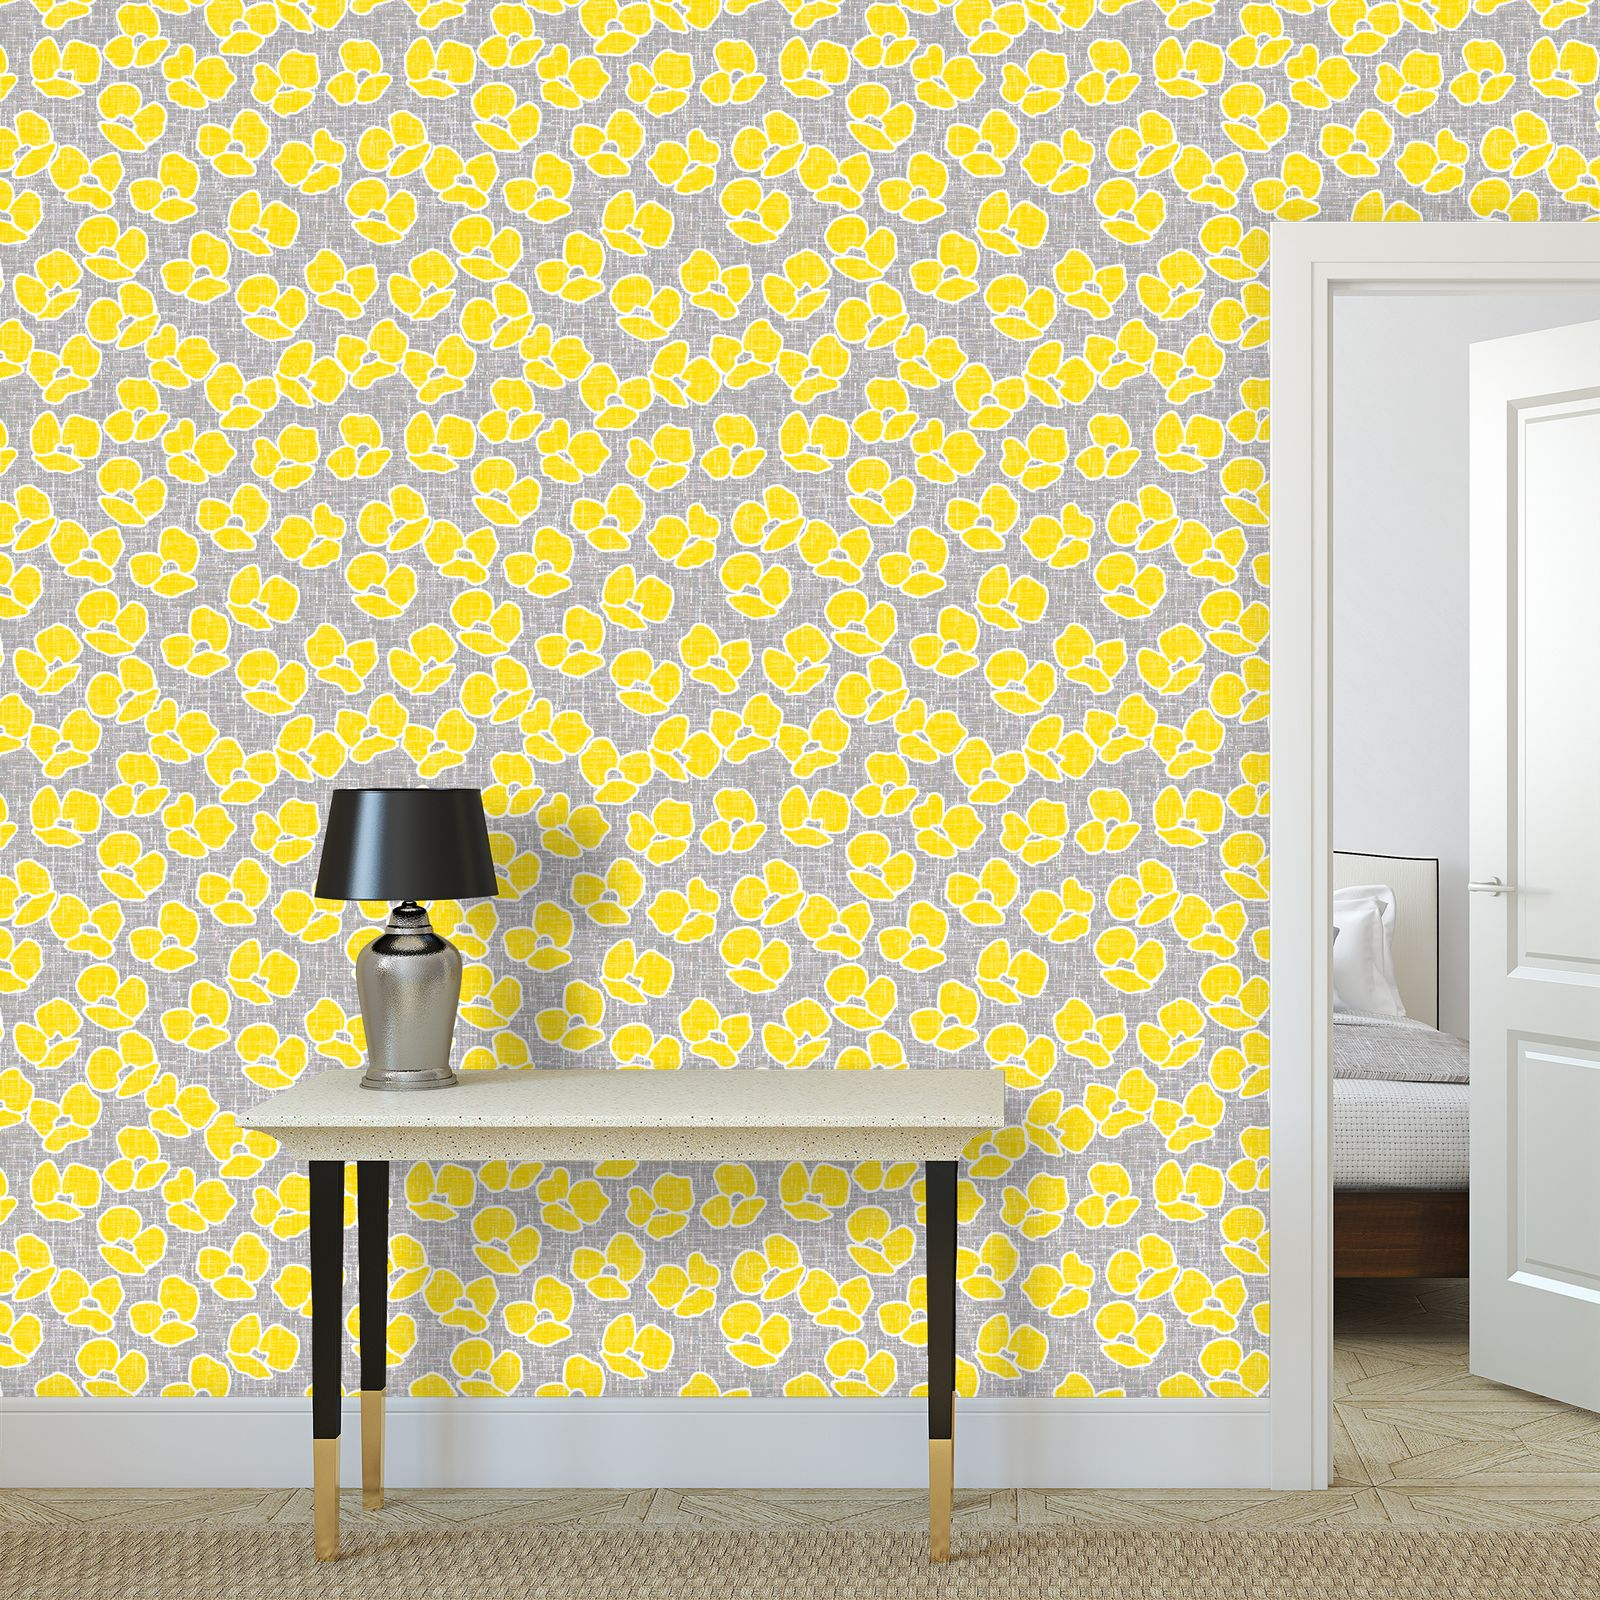 Sun poppies - Wallpaper Rolls Large scale - yellow flowers, gray flax, trendy, bright gift, summer, blooming, floral, gray flax - design by Tiana Lofd